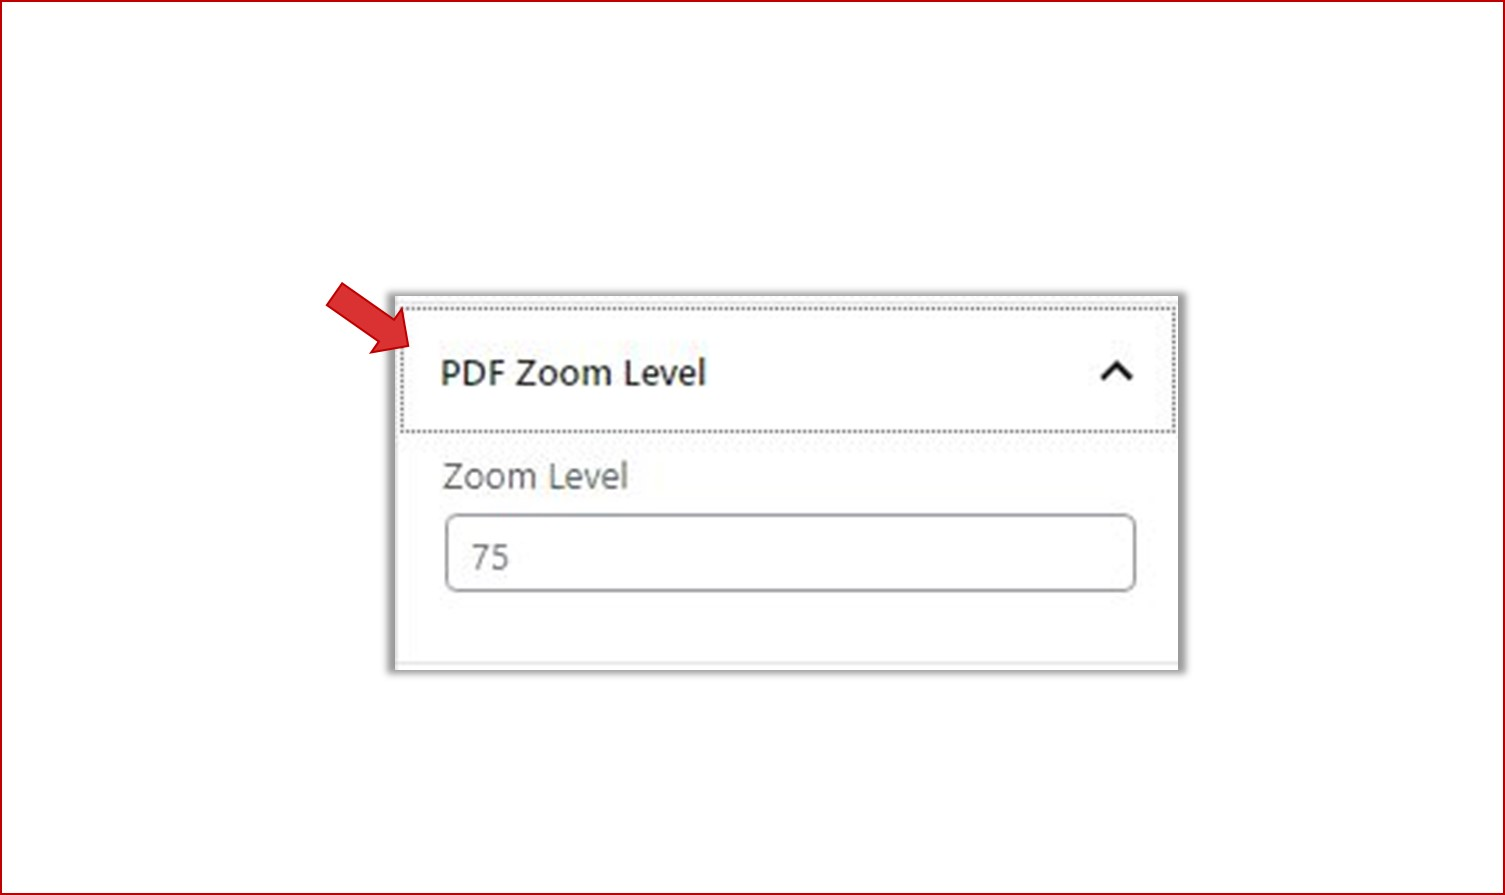 Setting PDF Zoom Level